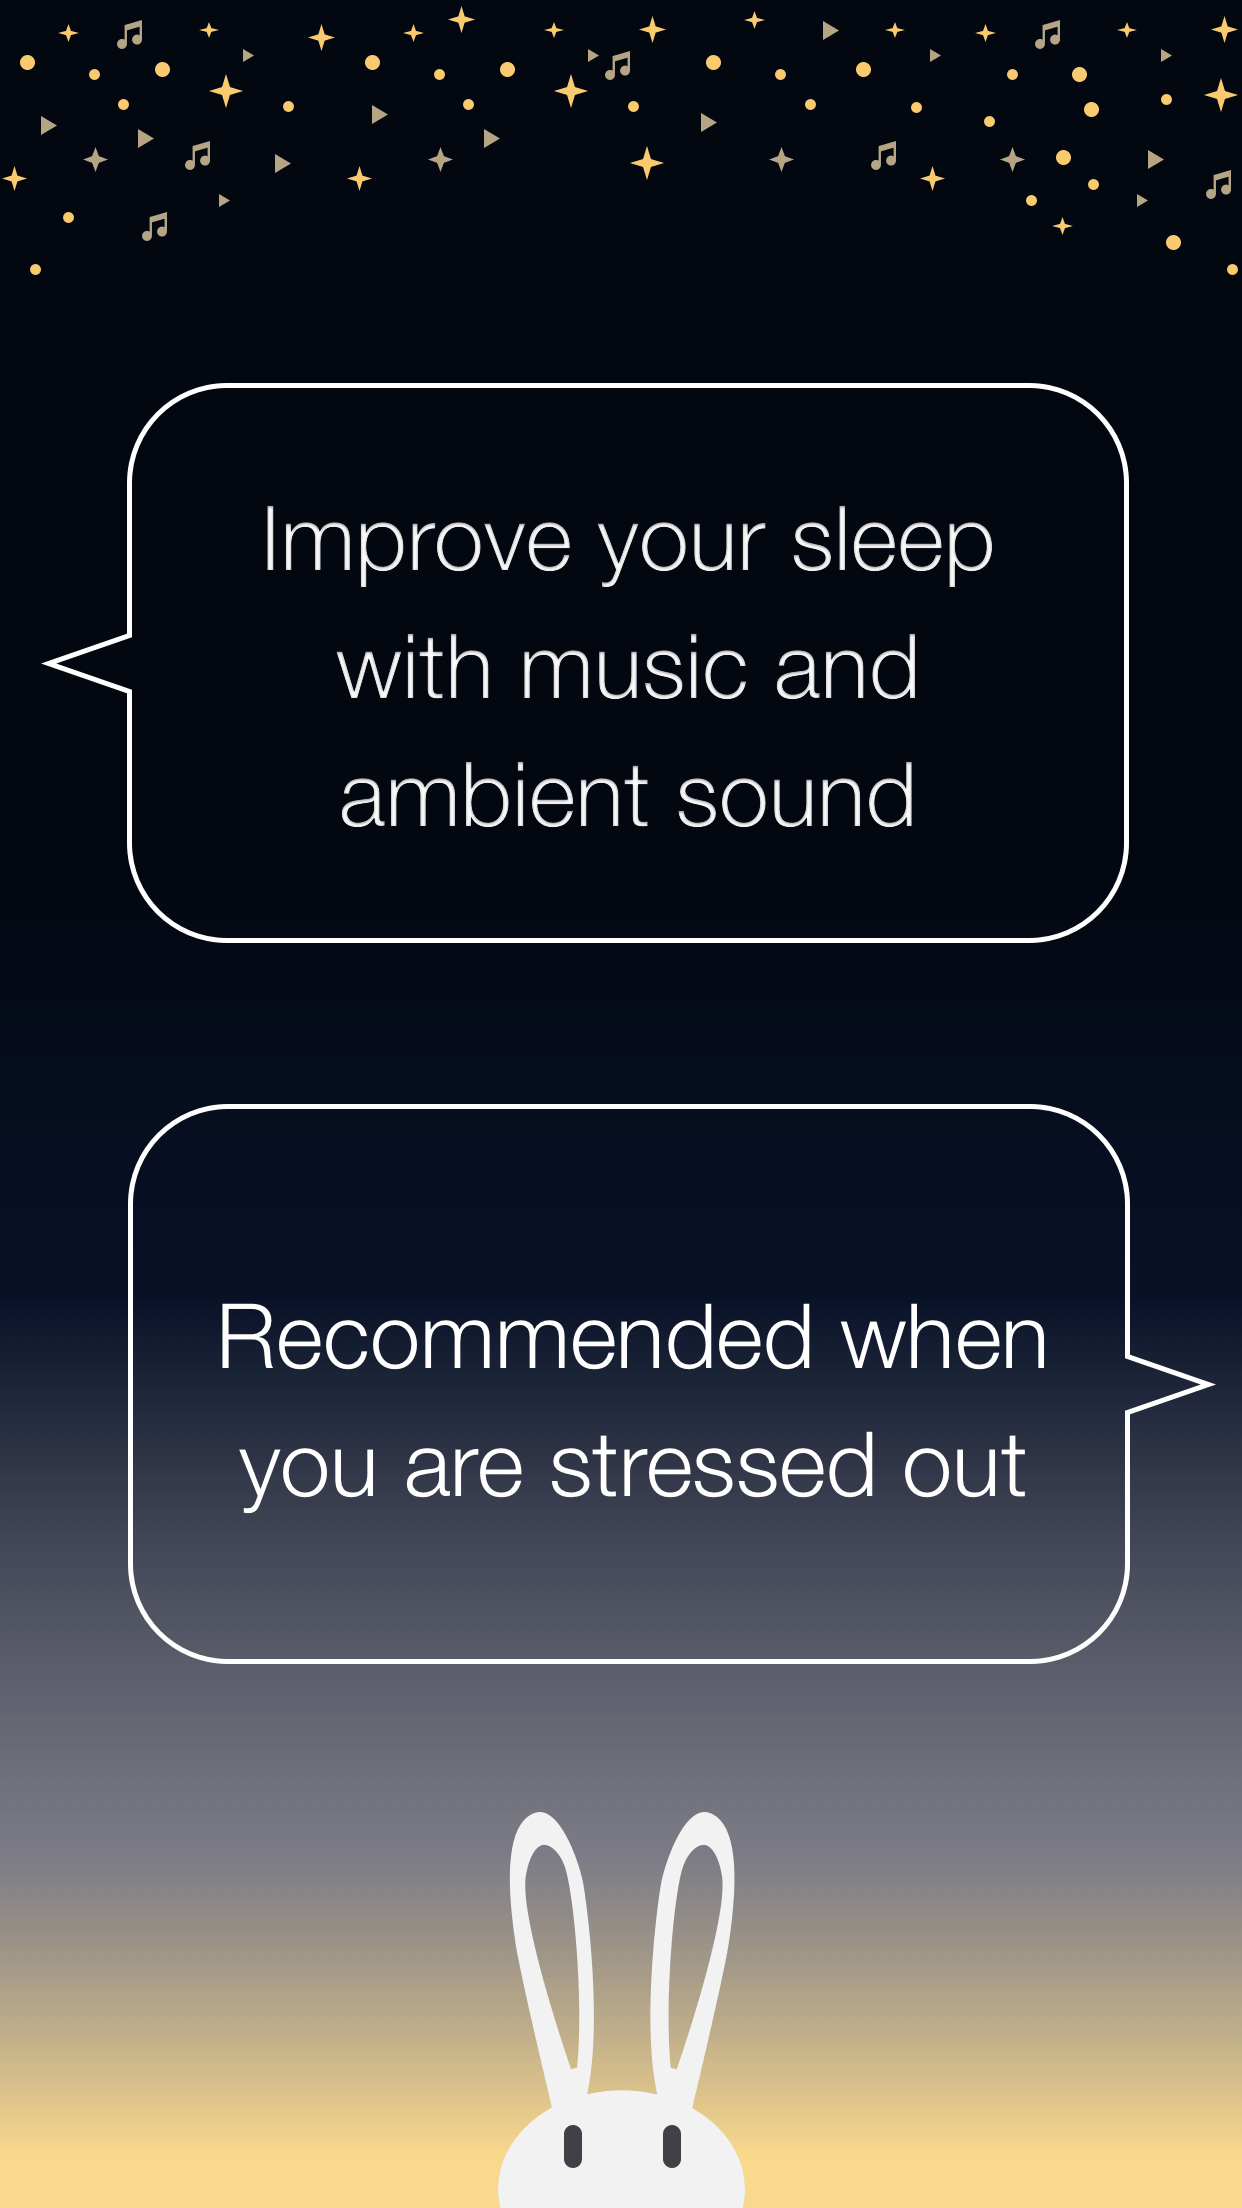 improve your sleep with musics and ambient sounds